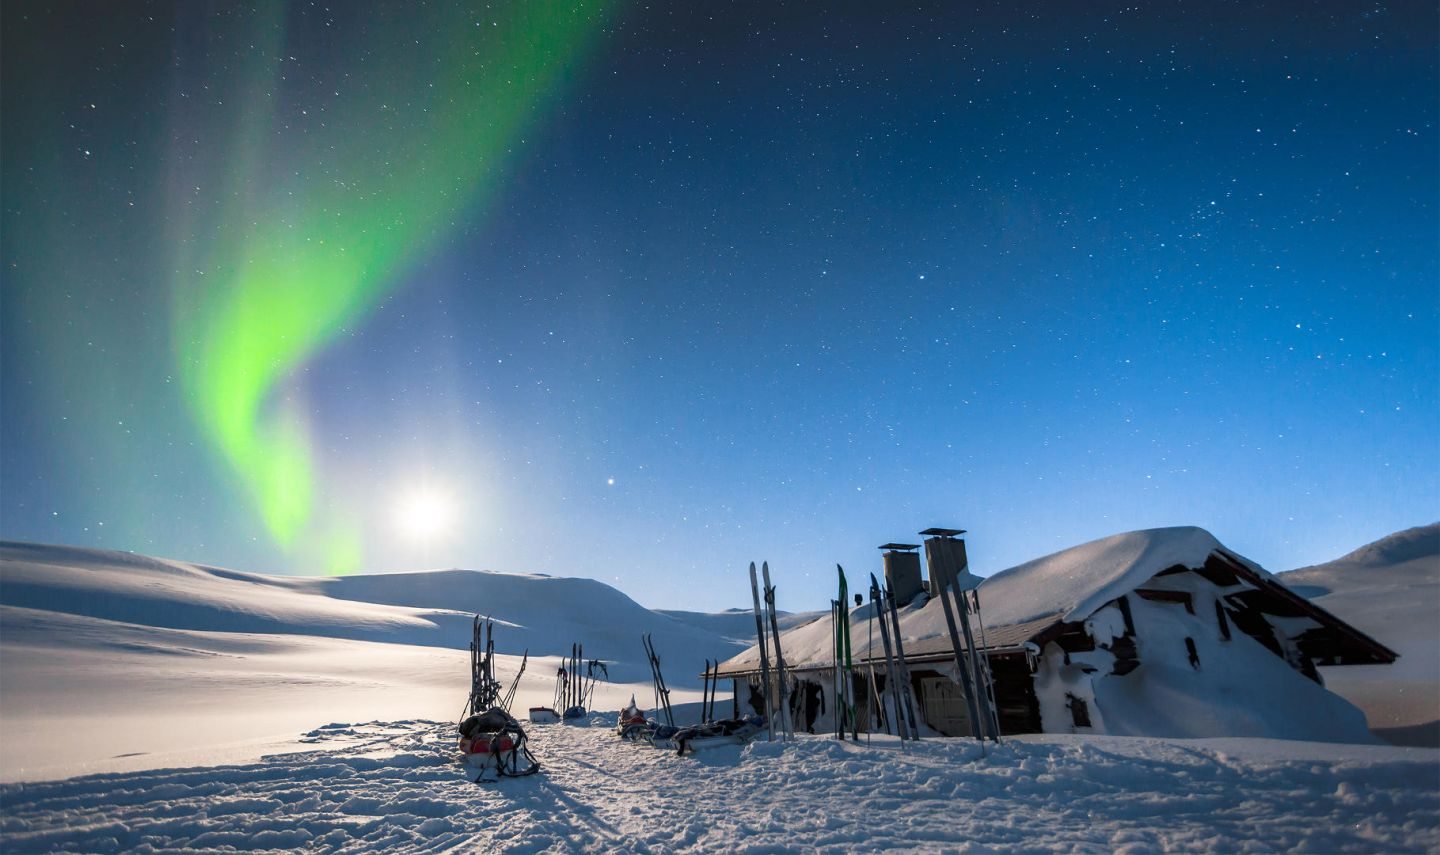 auroras over a snowy cabin in Lapland